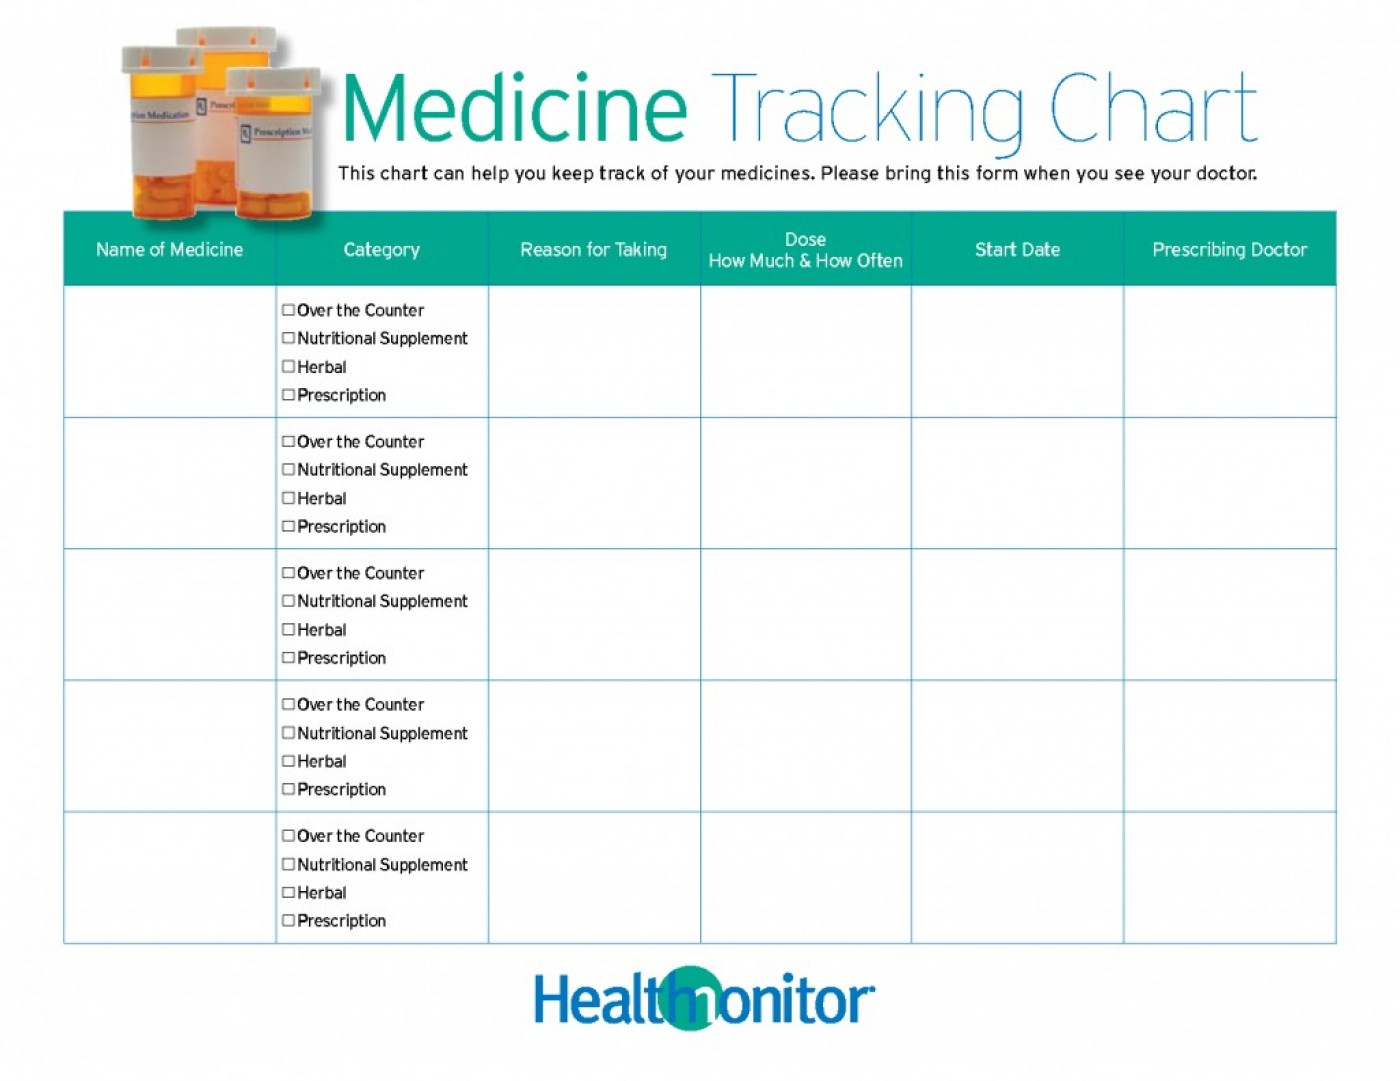 002 Daily Medication Schedule Template Medical Startup Business Plan - Free Printable Medicine Daily Chart